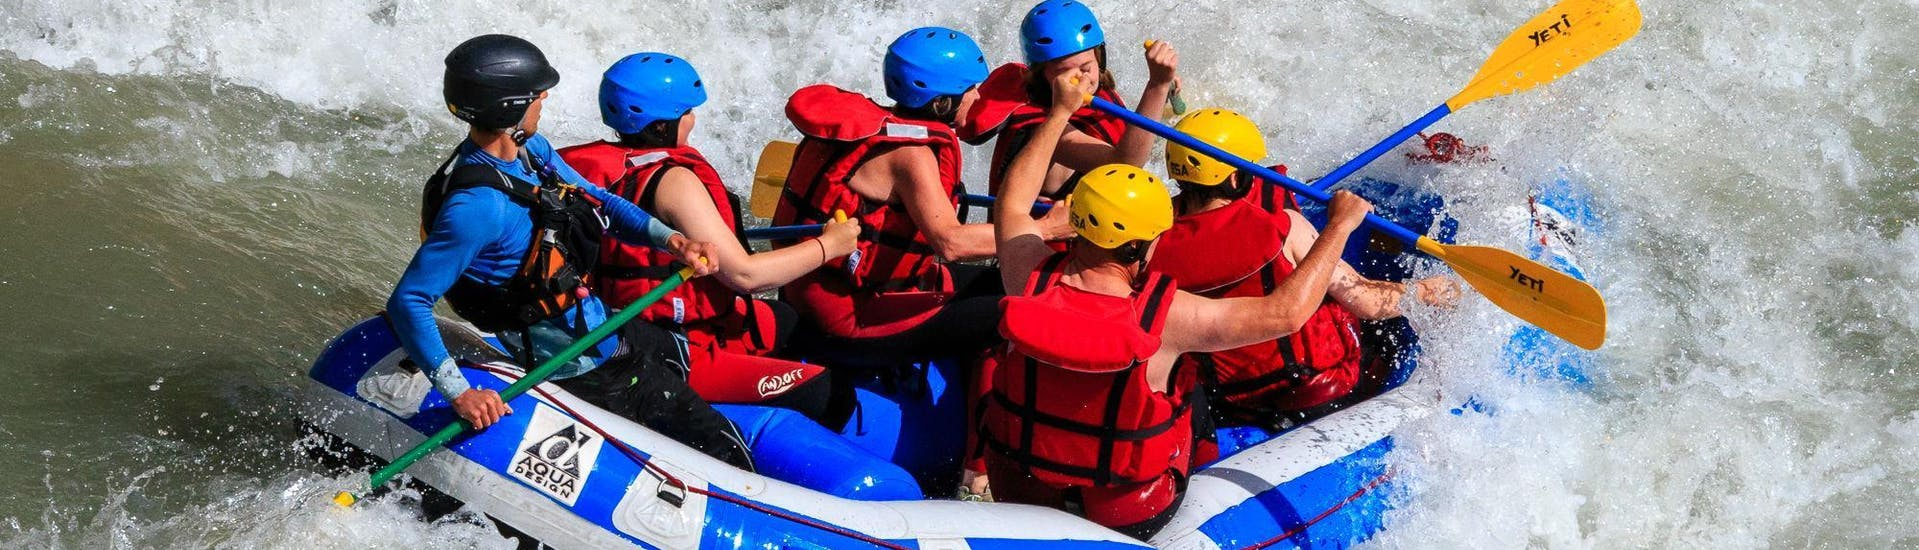 A group of adults and kids are caught in rapids on the Verdon river and are having fun during the Classic rafting descent organized by Yeti Rafting.